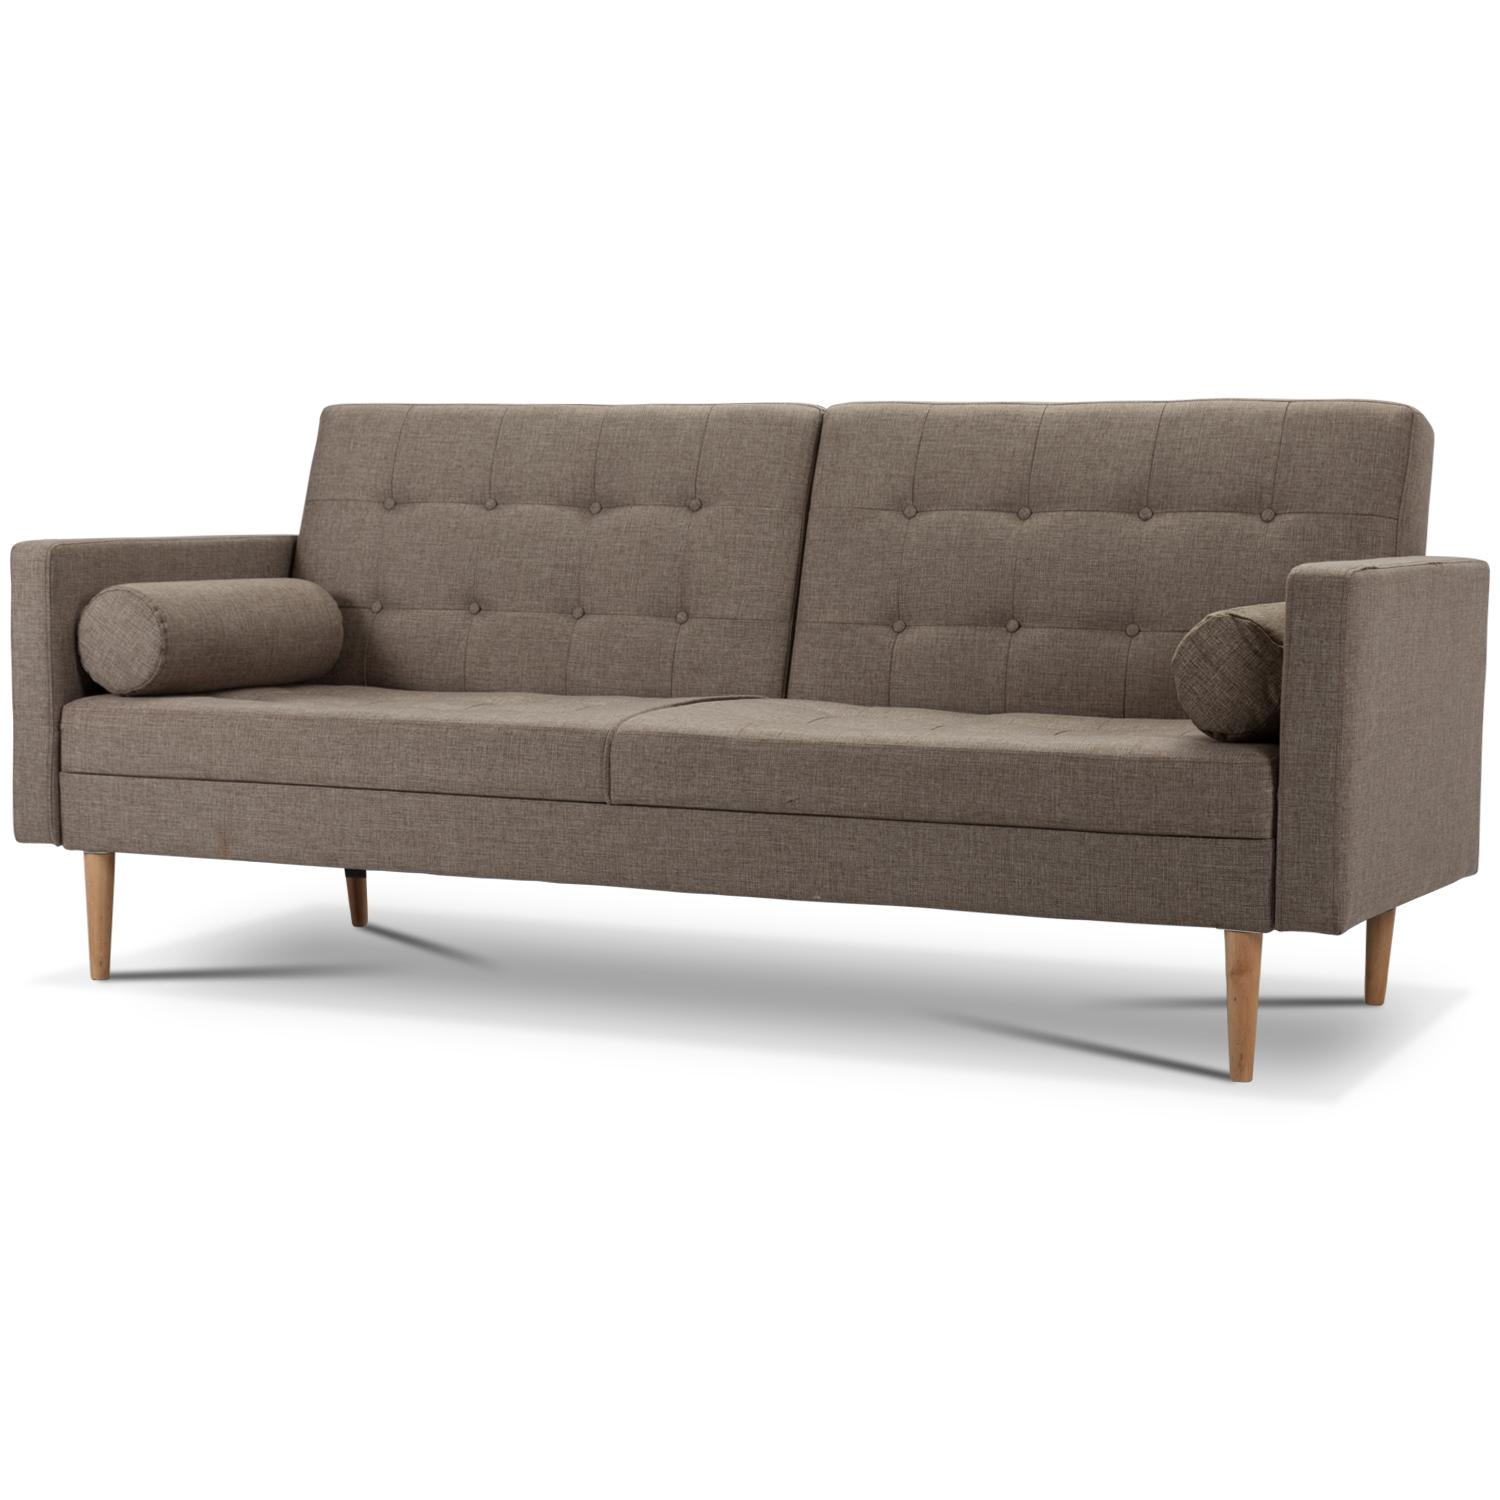 3 Seater Sofa Bed Sale – Fjellkjeden In 3 Seater Sofas For Sale (View 3 of 21)